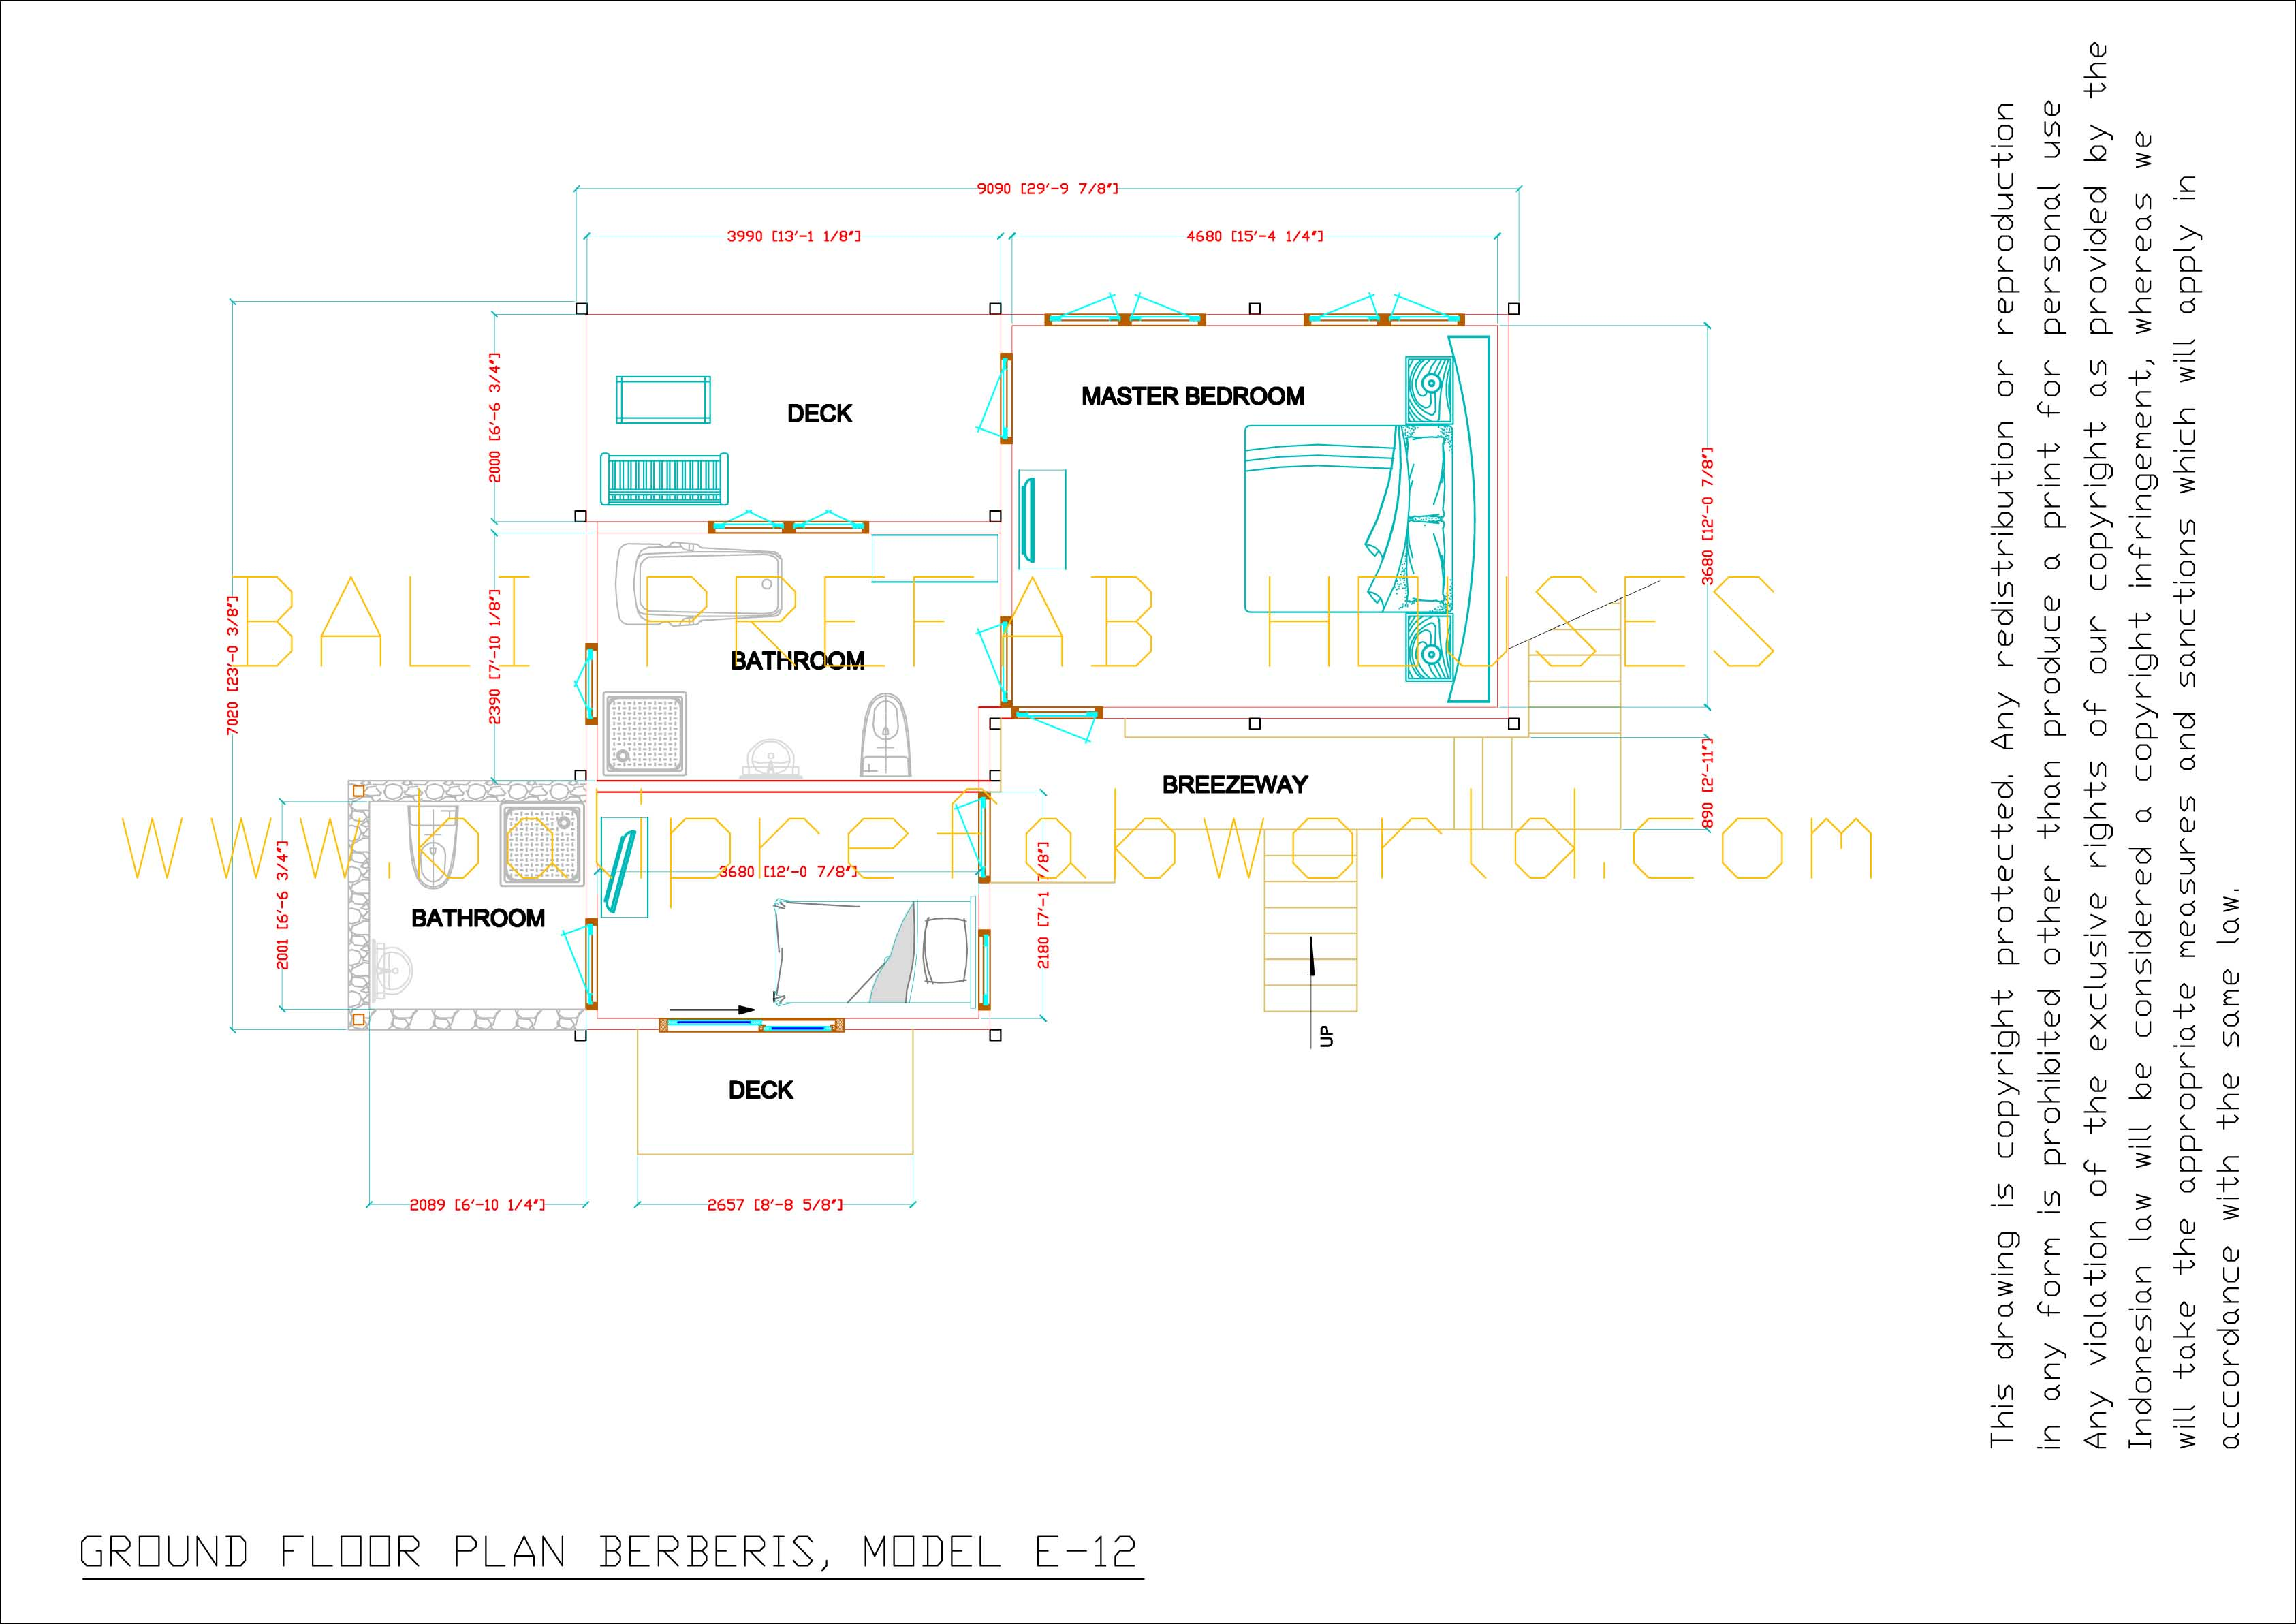 berberis floorplan-1